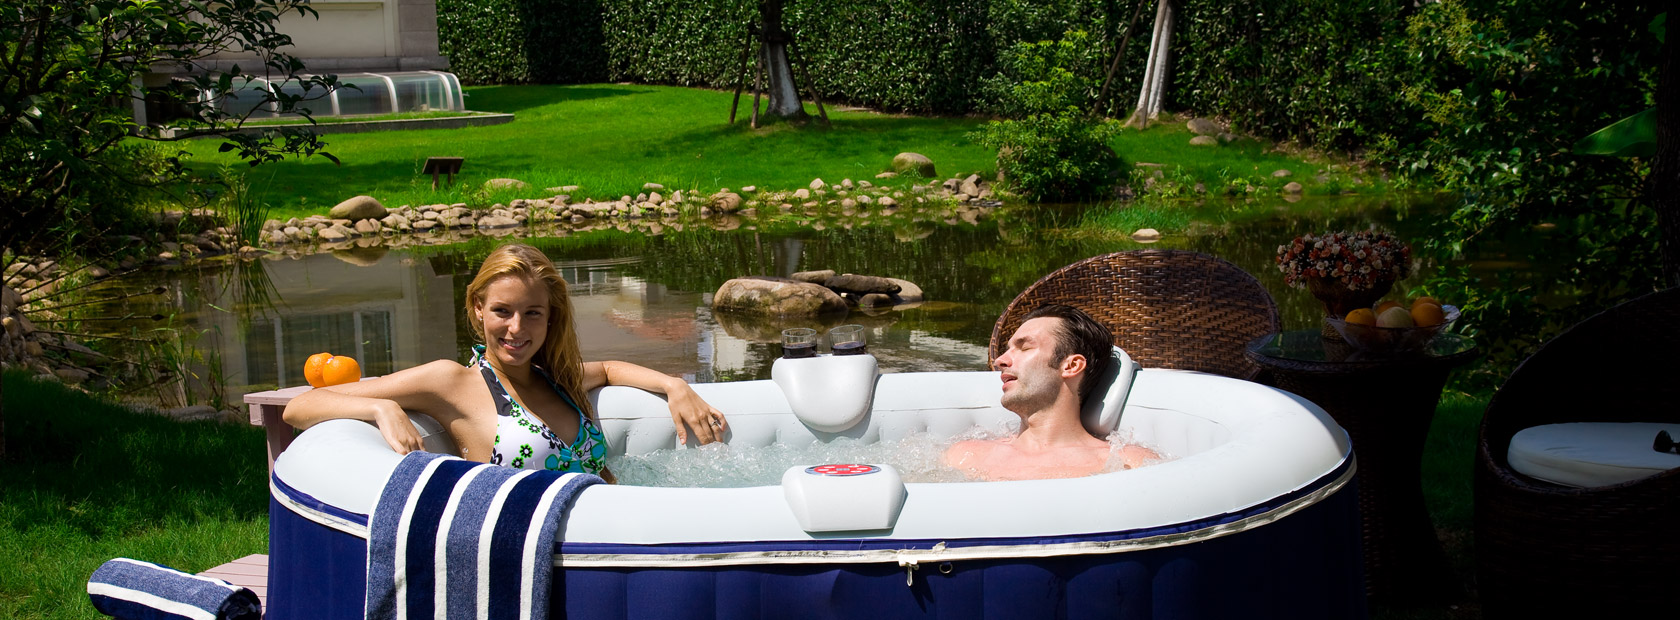 Aqua Spas Inflatable Spa